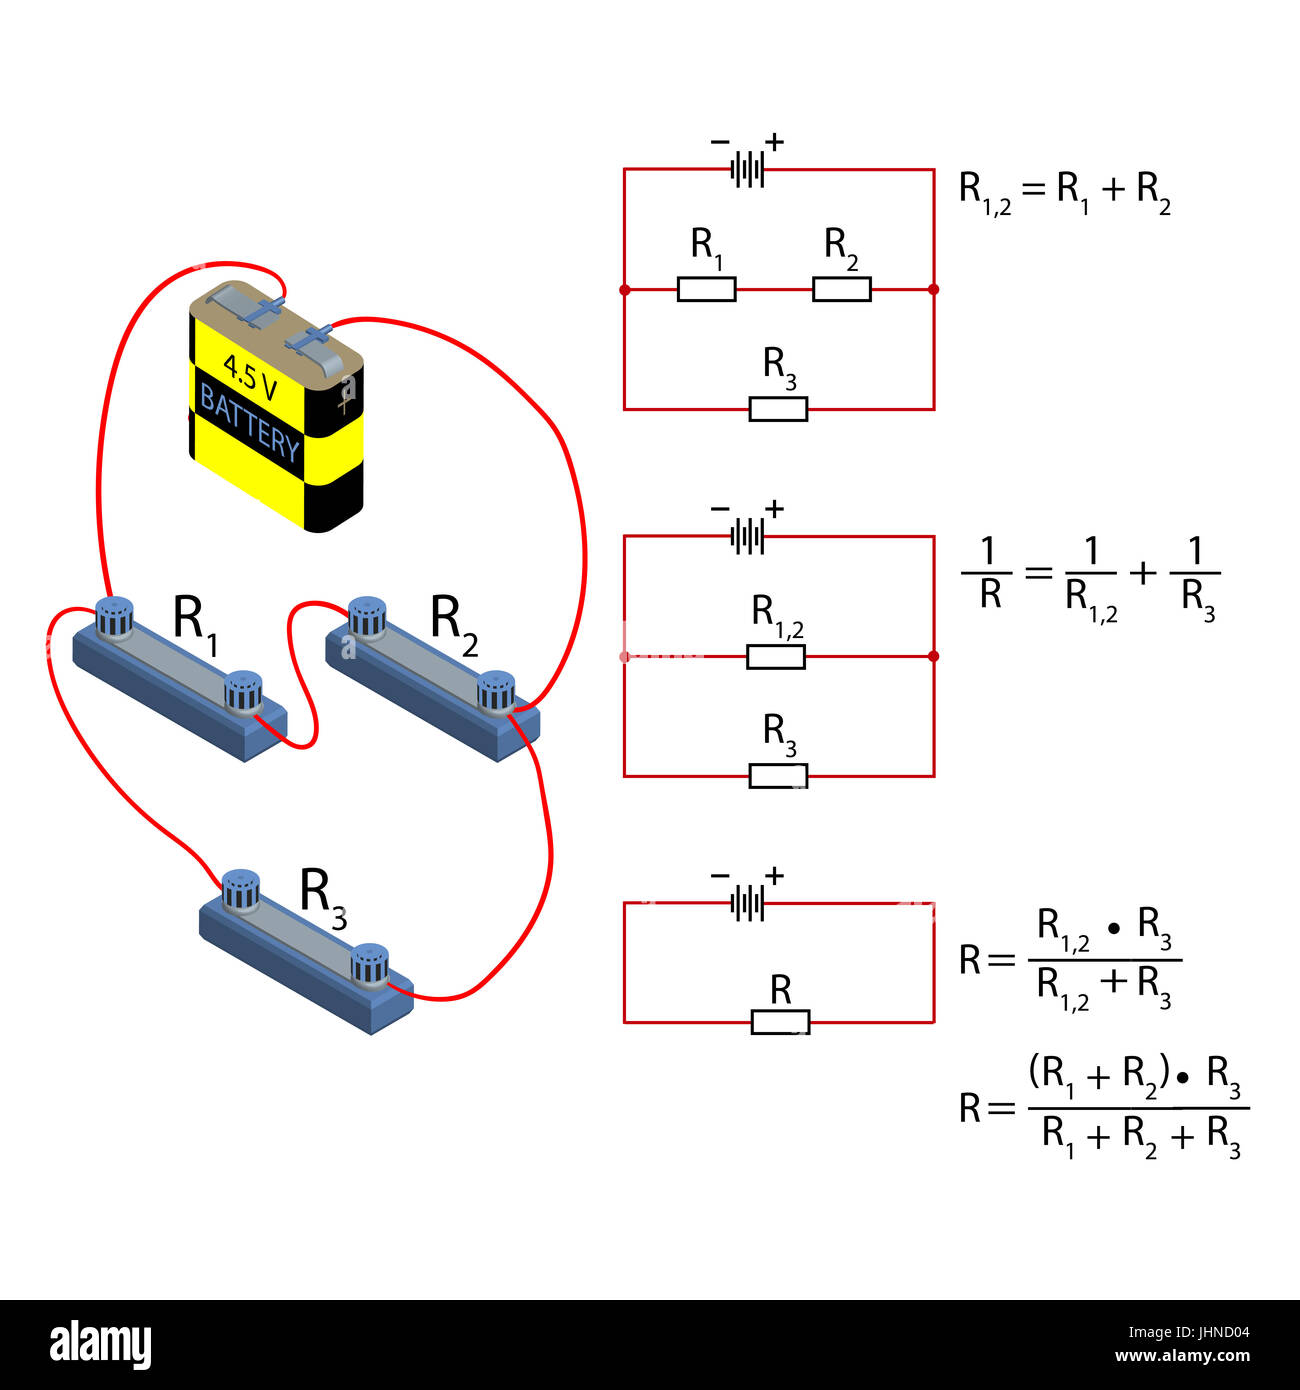 hight resolution of representation of the step by step simplification of the electrical circuit and the formula for calculating the resistance in parallel and serial conn